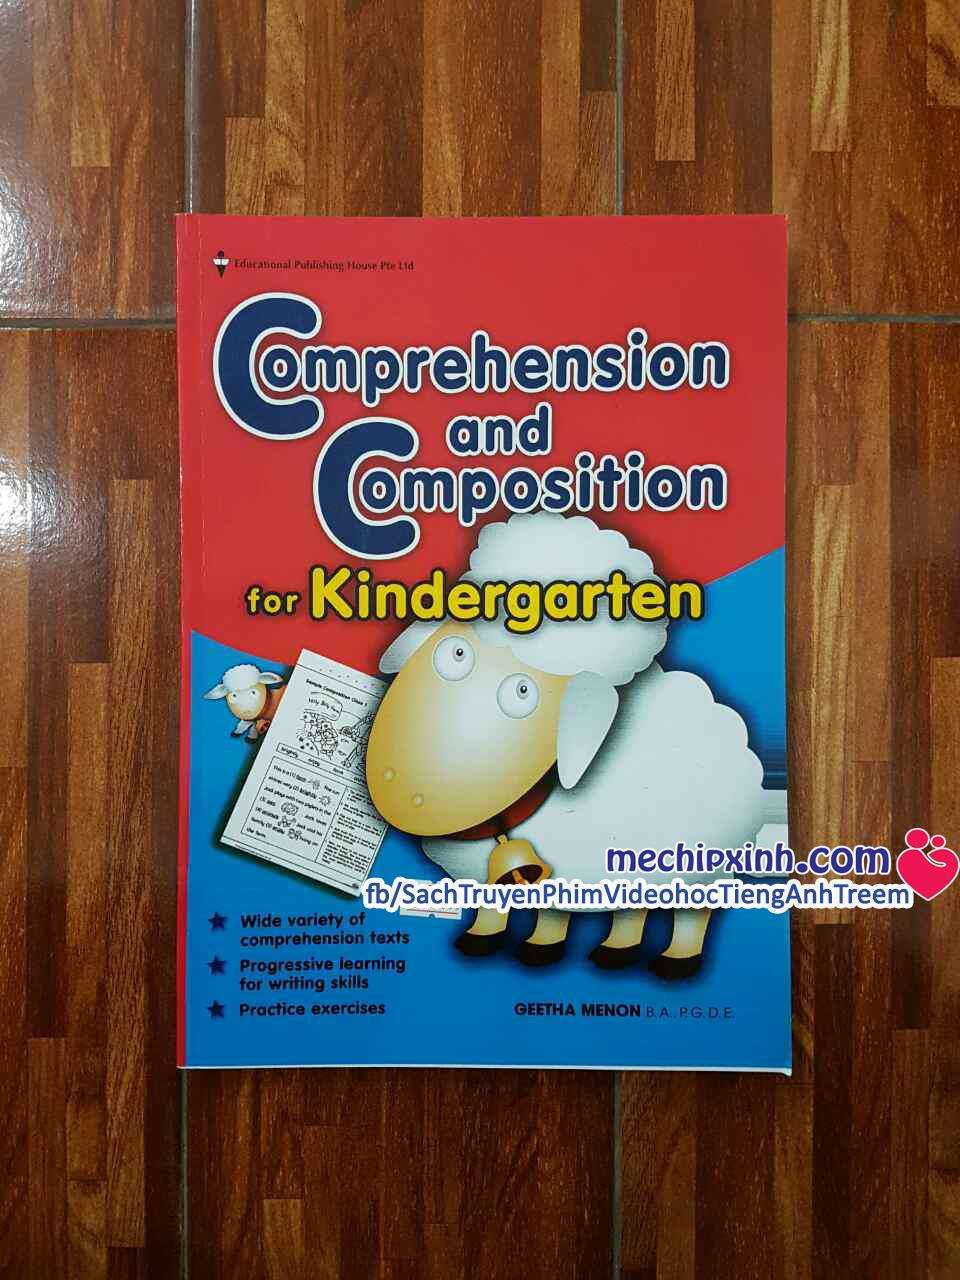 Comprehension and compositon for Kindergarden sách từ vựng tiếng Anh Singapore sách hình con Cừu